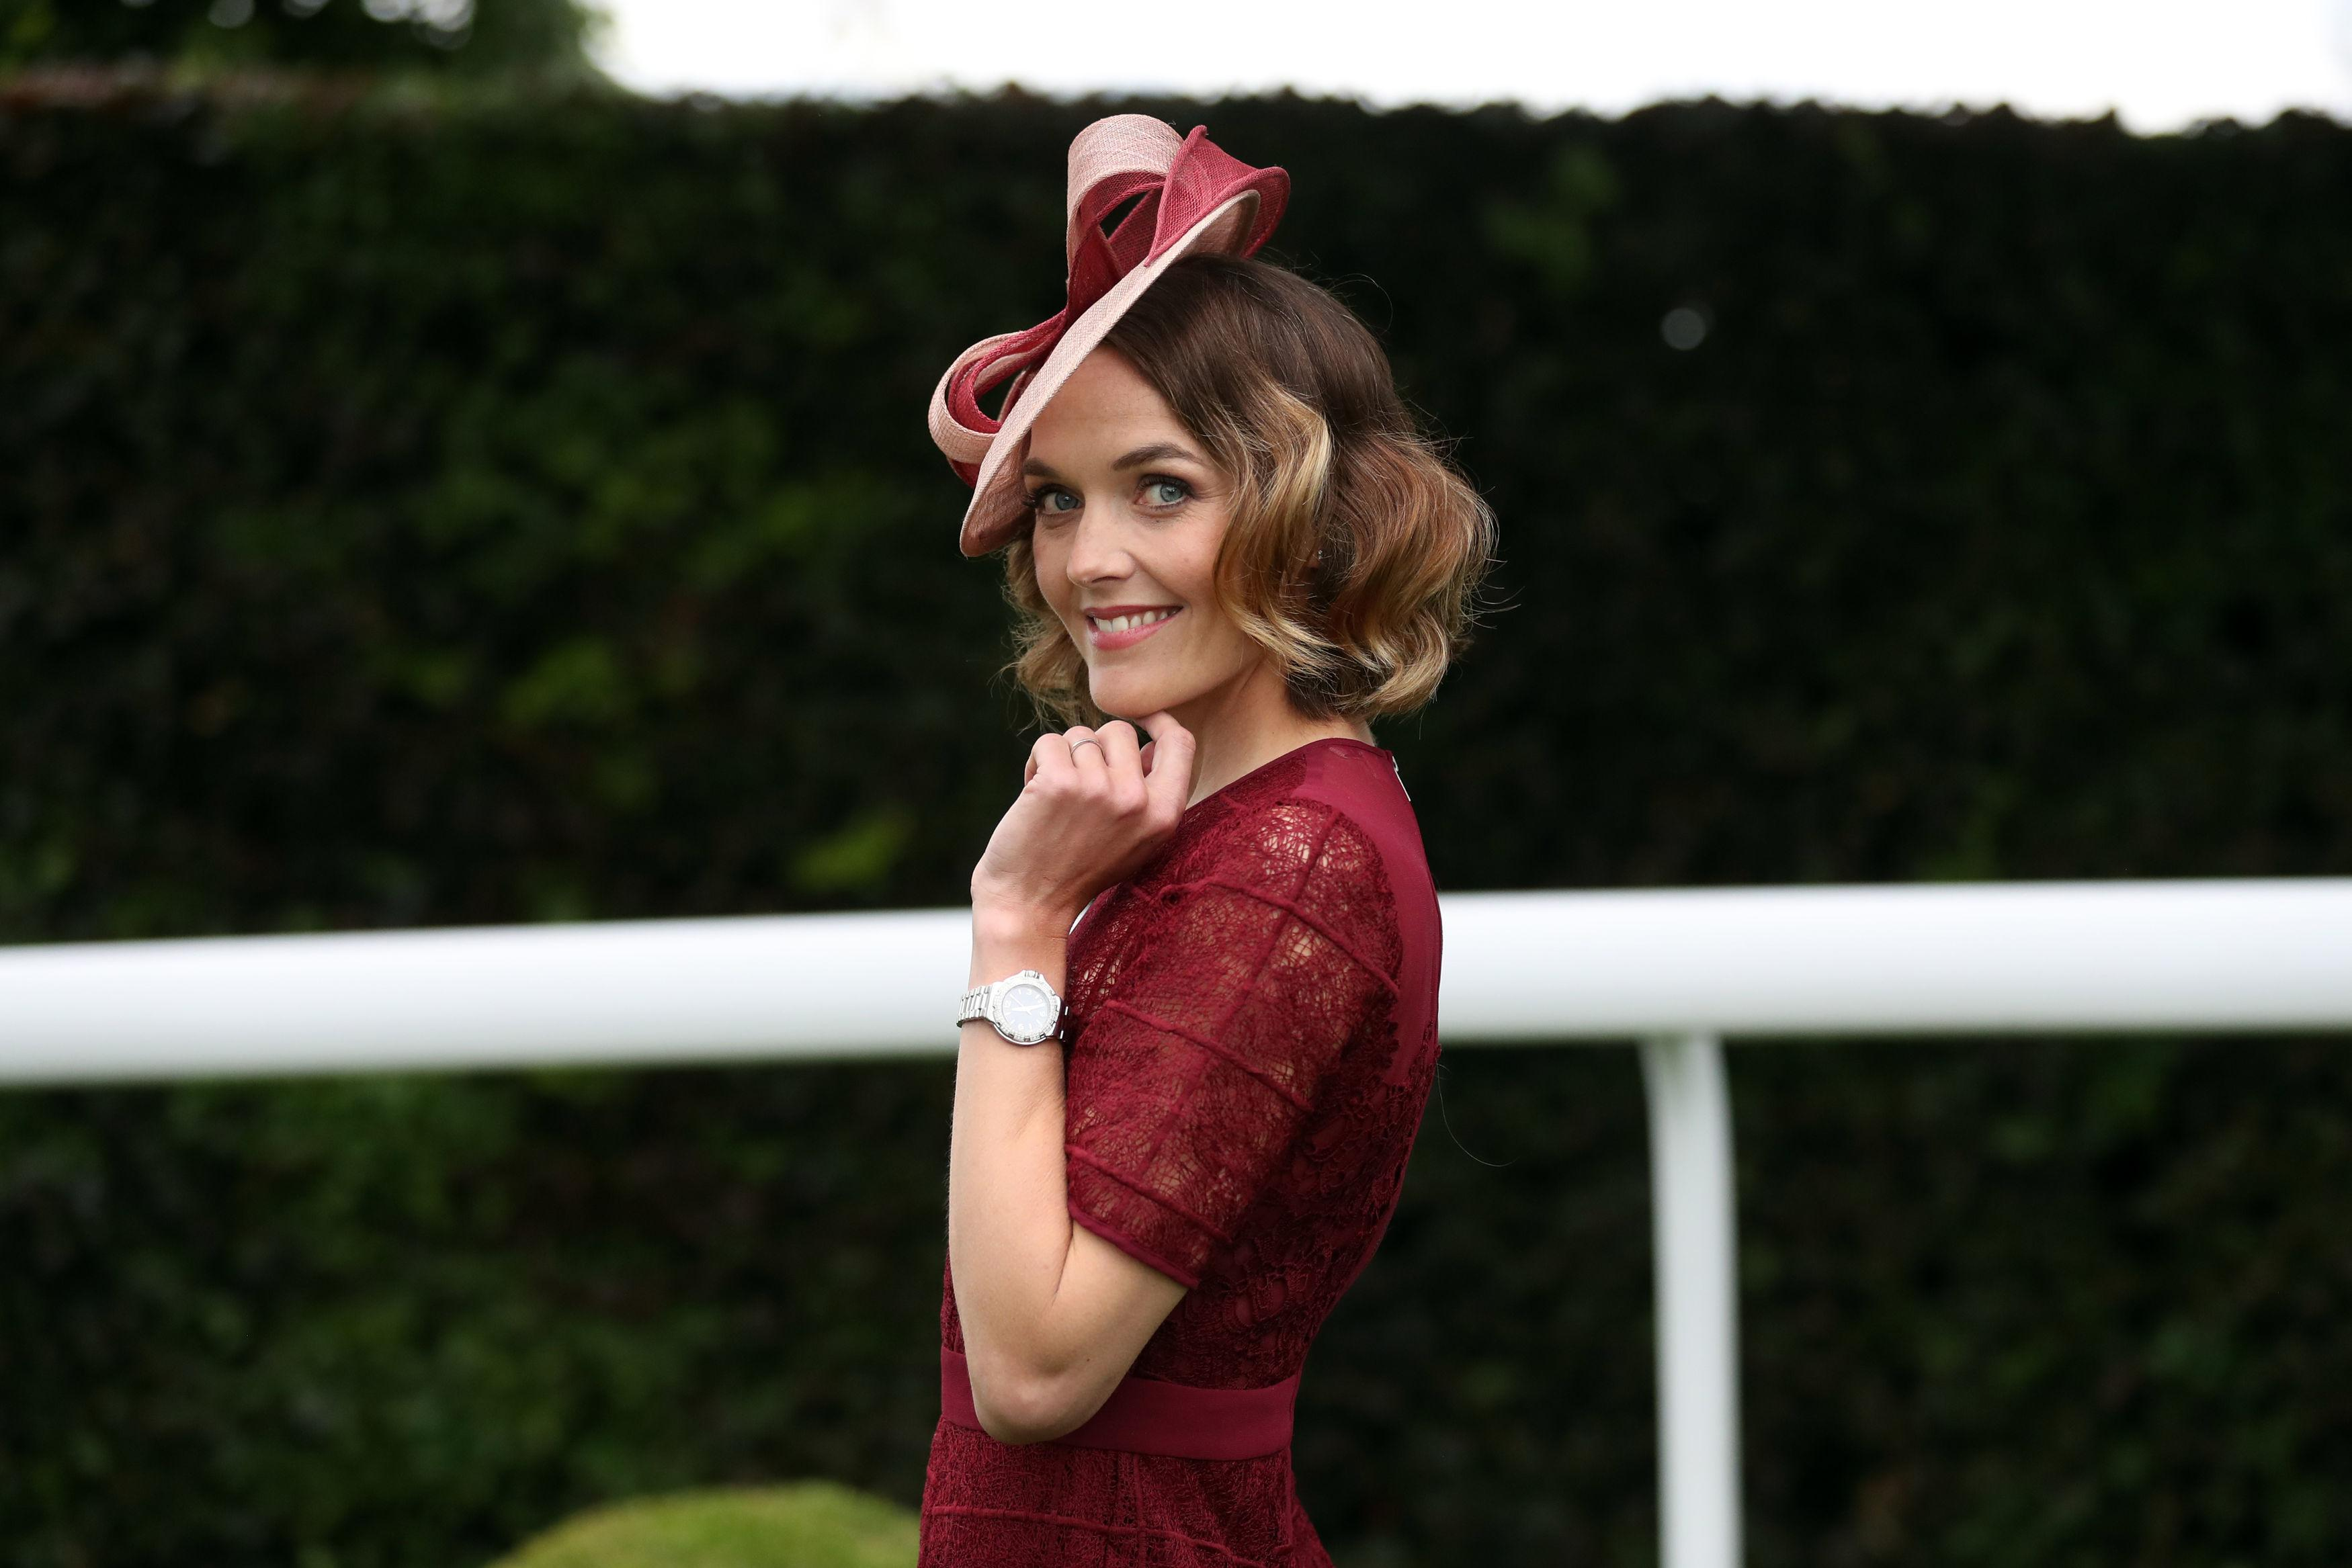 Victoria Pendleton has spoken about her struggles with mental health